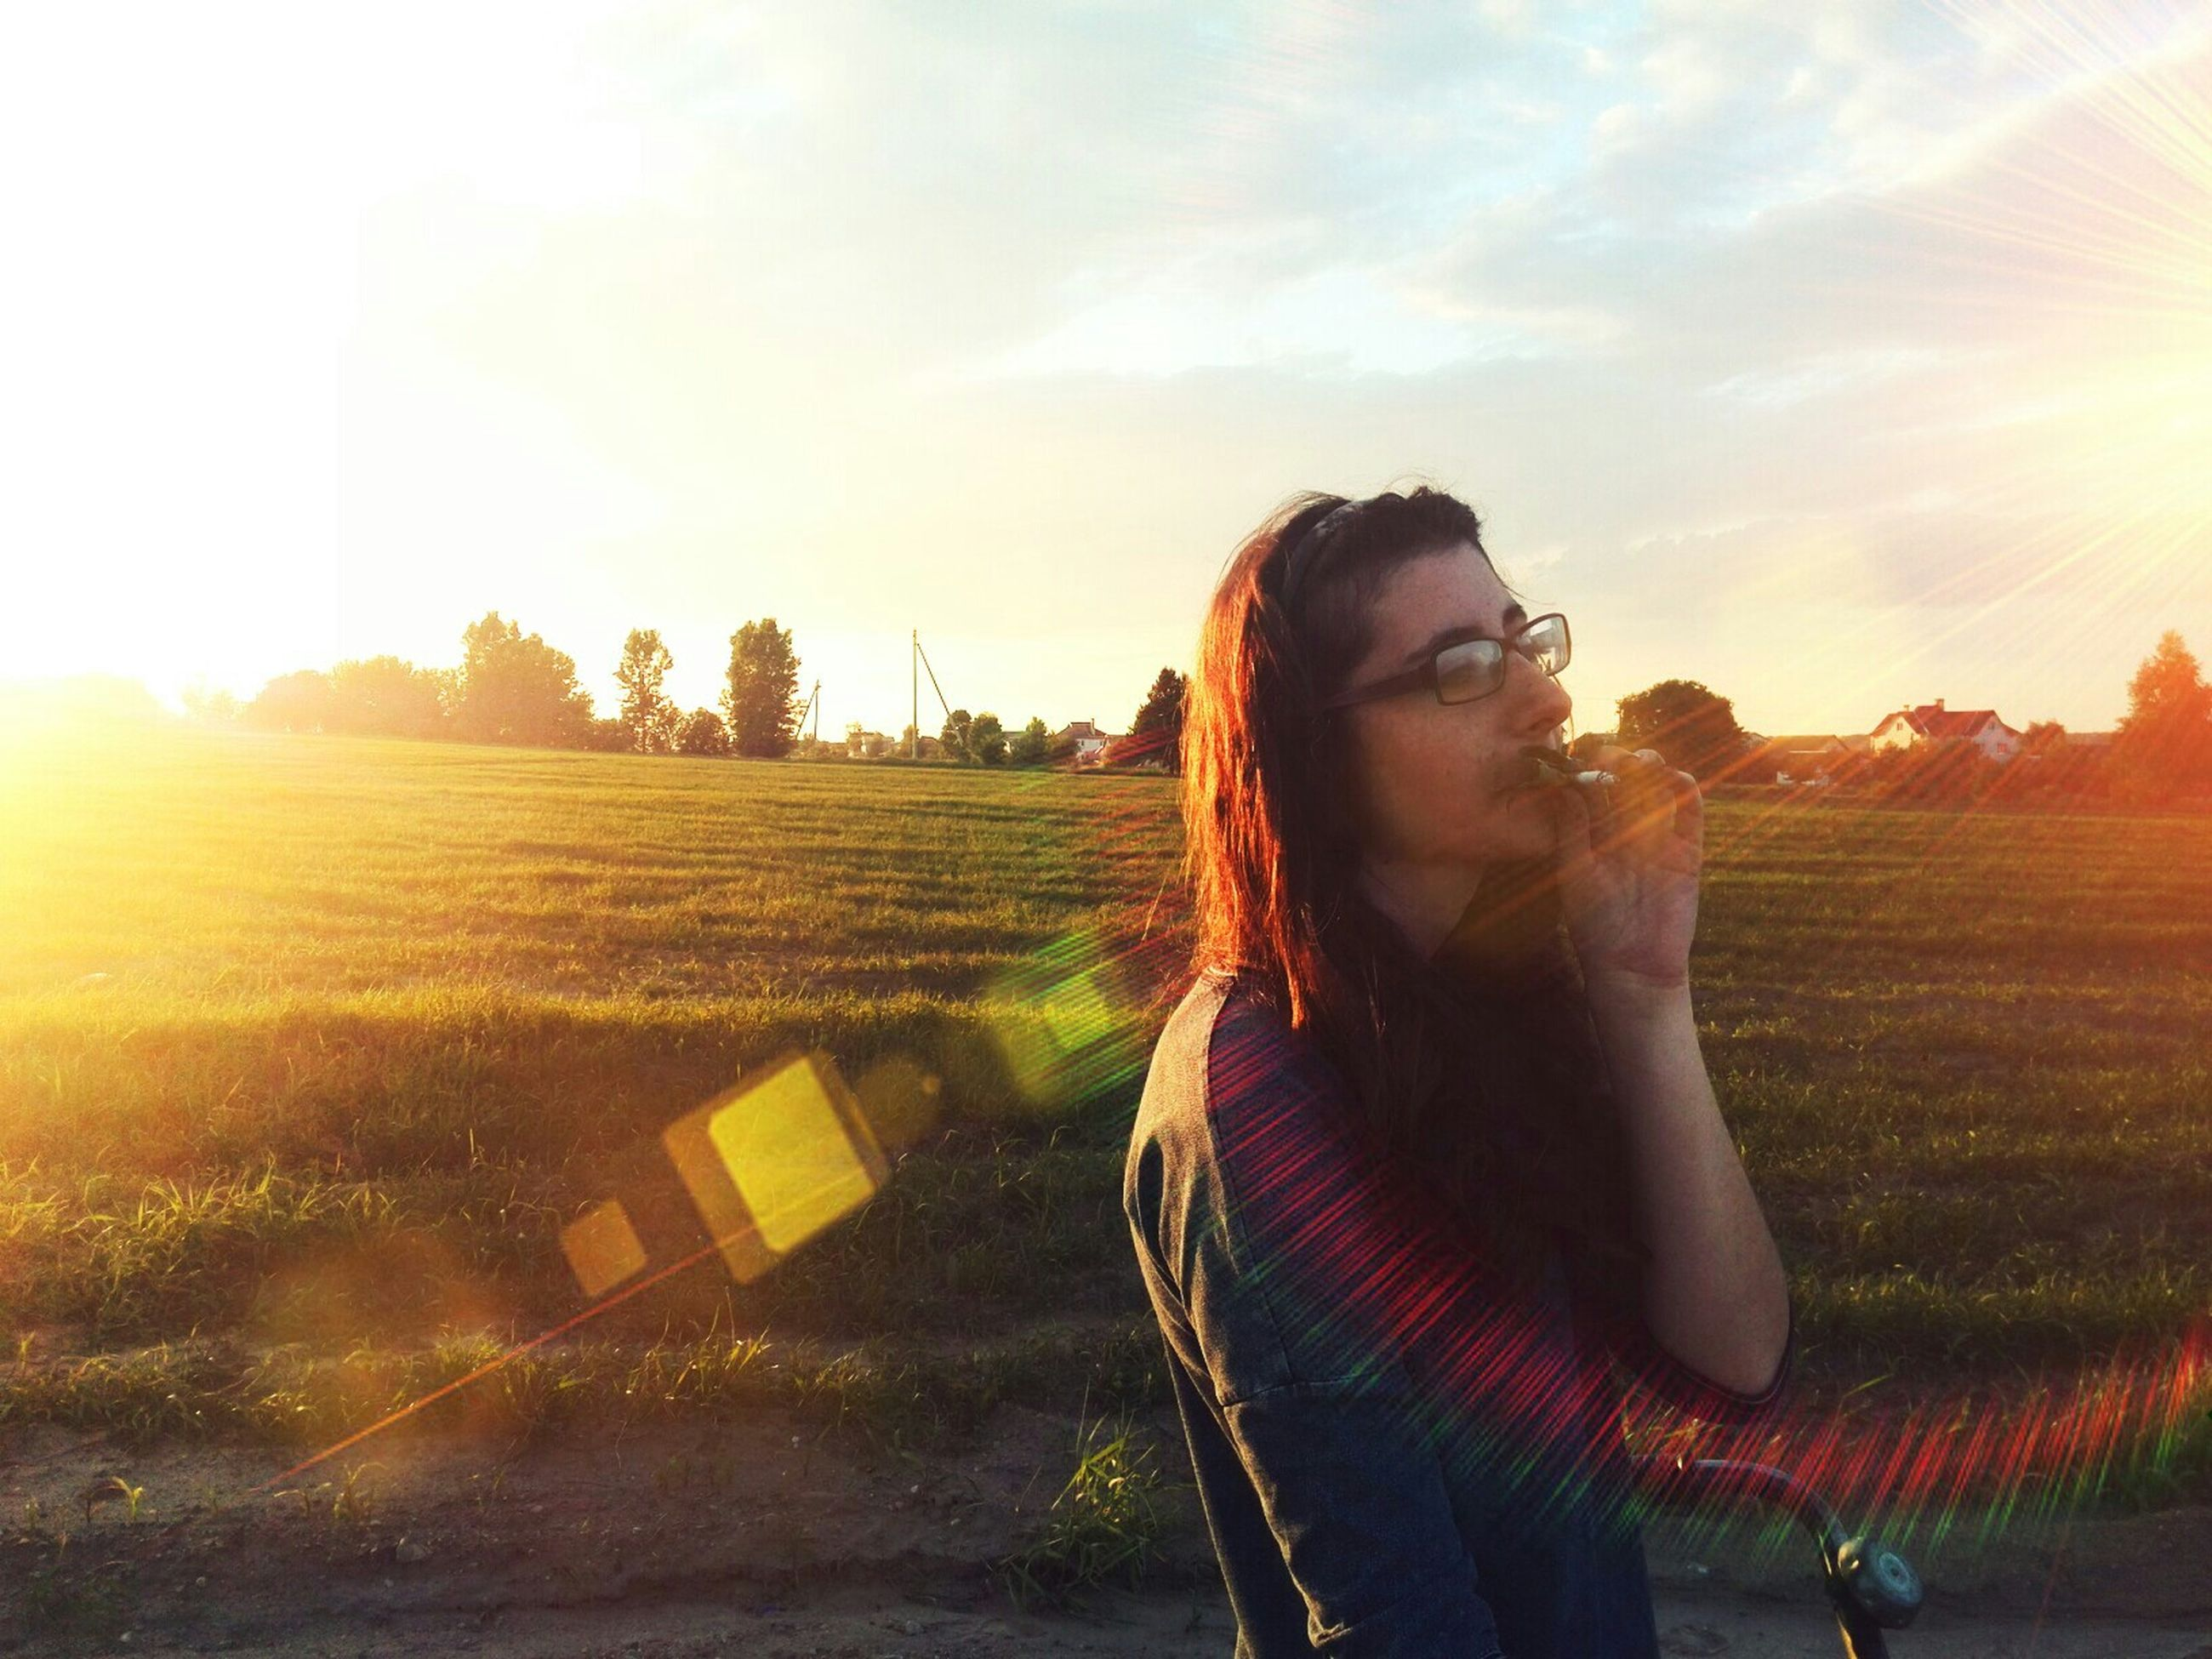 young adult, person, young women, lifestyles, leisure activity, sun, sunbeam, sunlight, sky, field, long hair, casual clothing, sunset, lens flare, portrait, looking at camera, sunglasses, grass